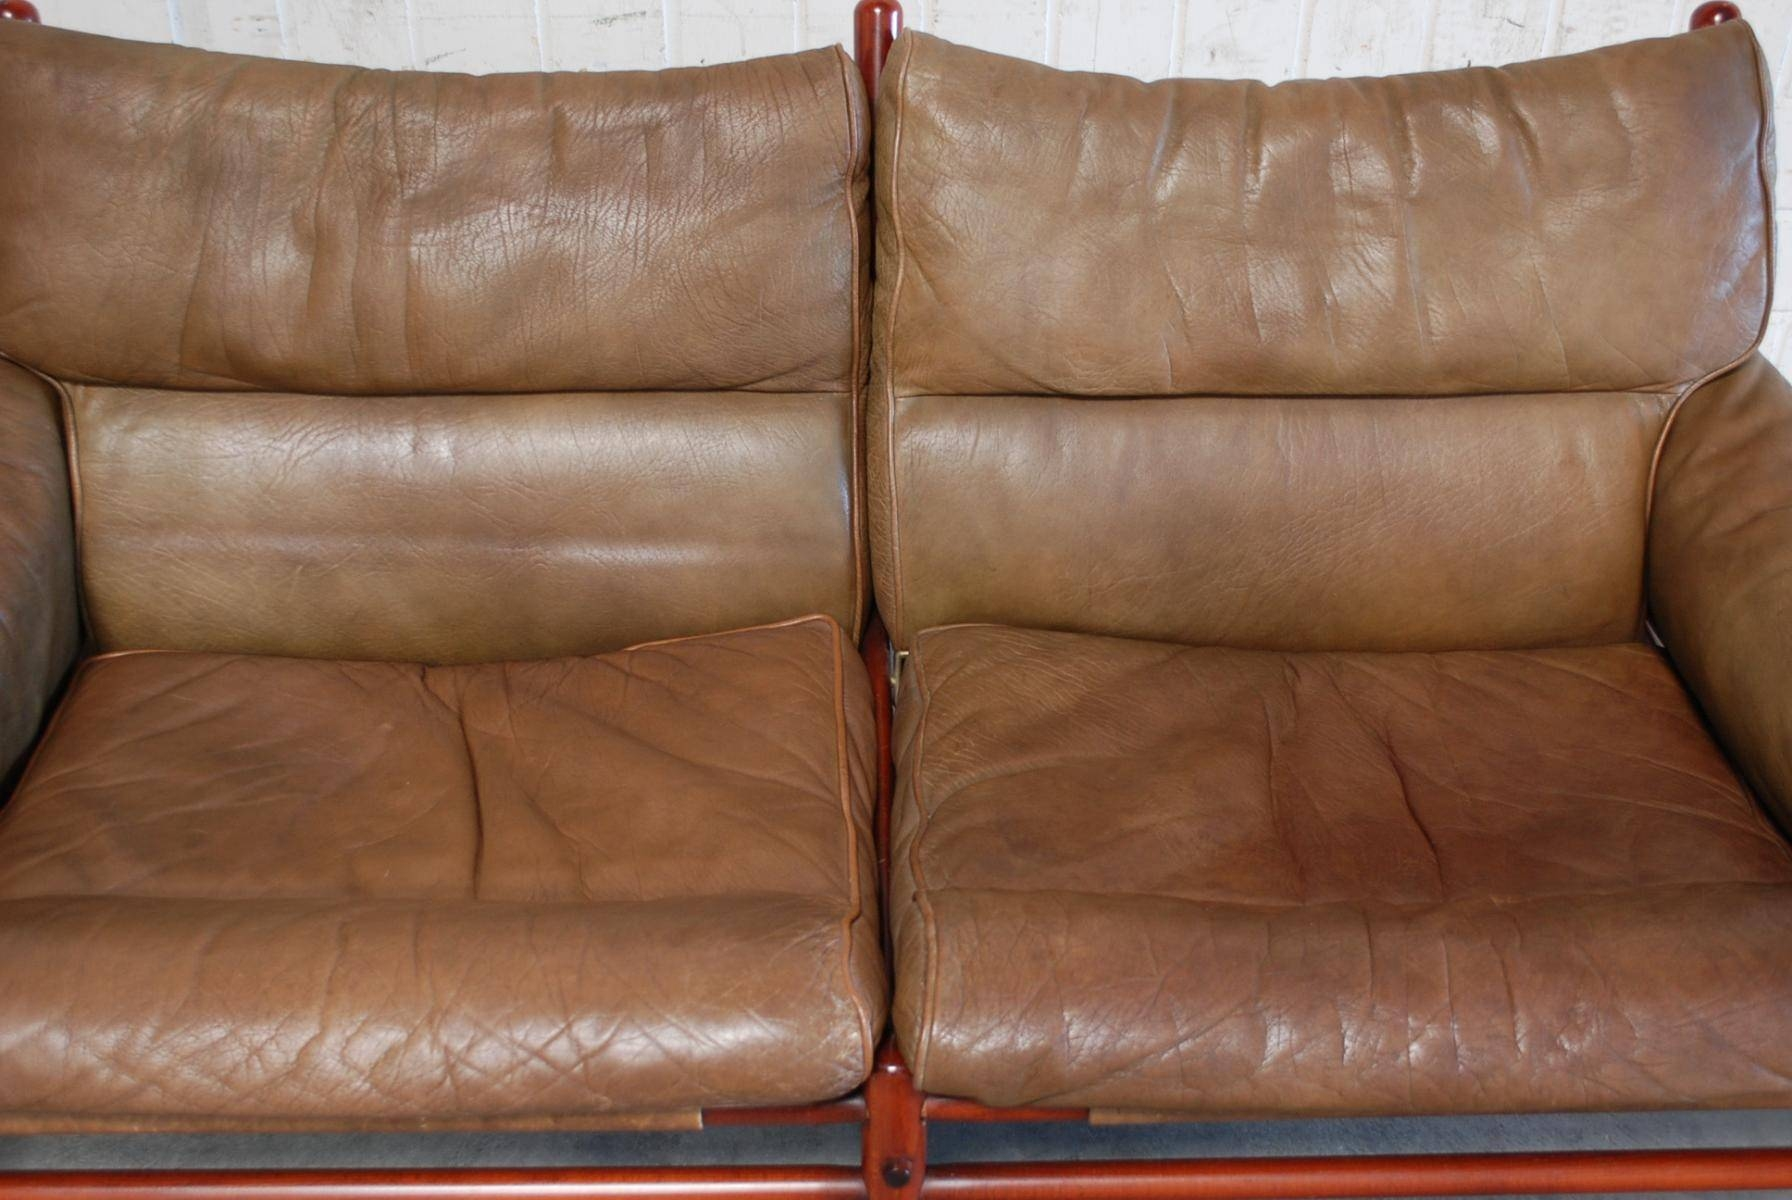 Vintage Kontiki 2 Seater Leather Sofaarne Norell For Sale At In 4 Seat Leather Sofas (View 20 of 30)